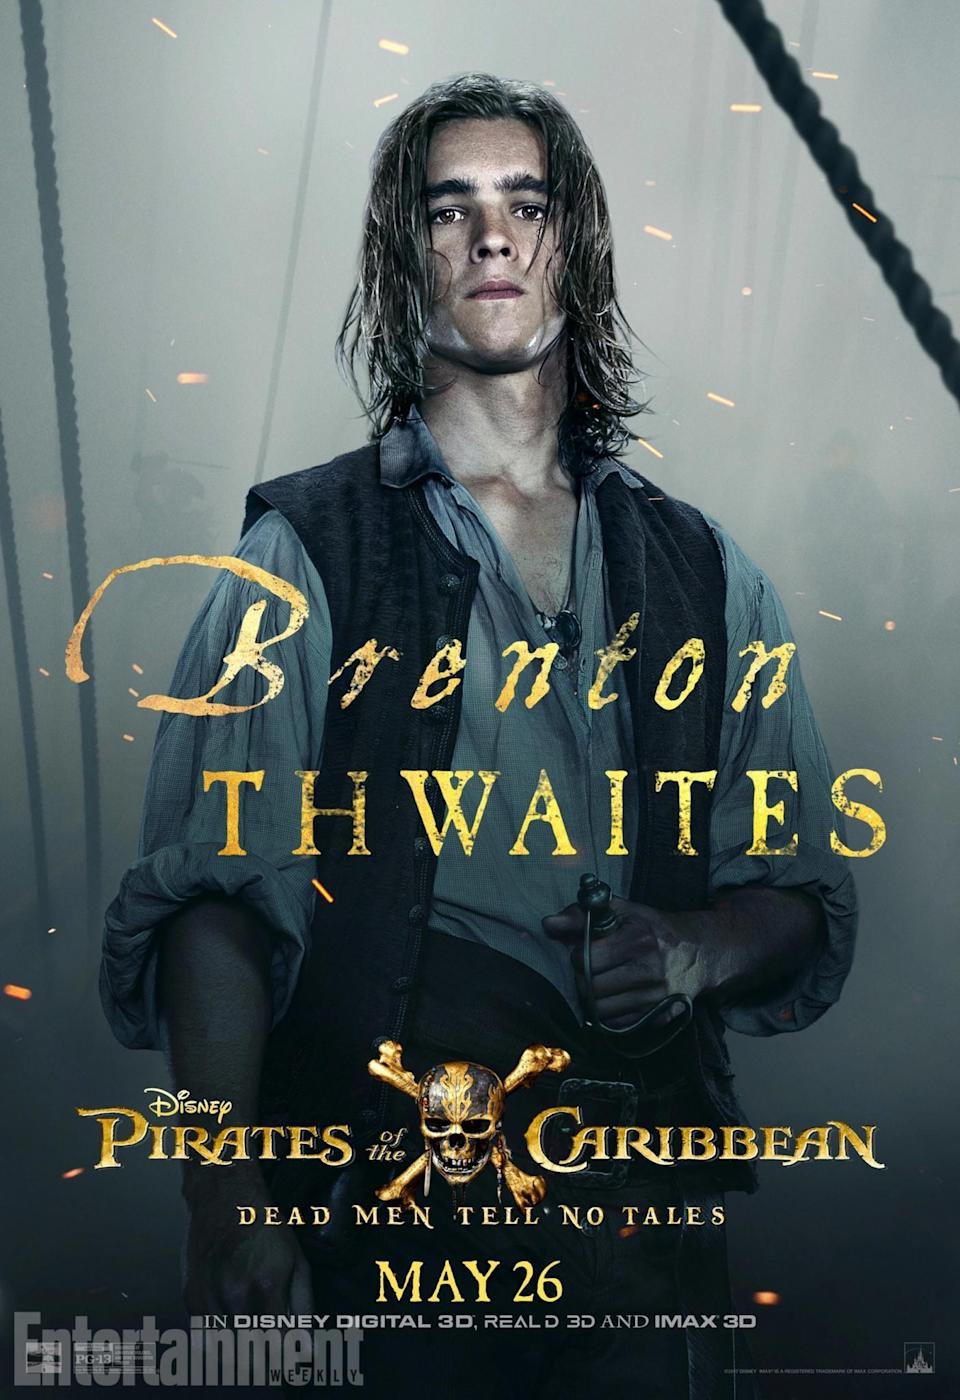 <p>The Turner family is back, this time with Brenton Thwaites as Henry Turner – the son of Orlando Bloom's Will Turner. Clearly, the Turners just can't keep themselves out of trouble, and young Henry quickly ends up running into Captain Jack. And he's looking for answers about his long-lost father…<br>(Credit: Disney) </p>